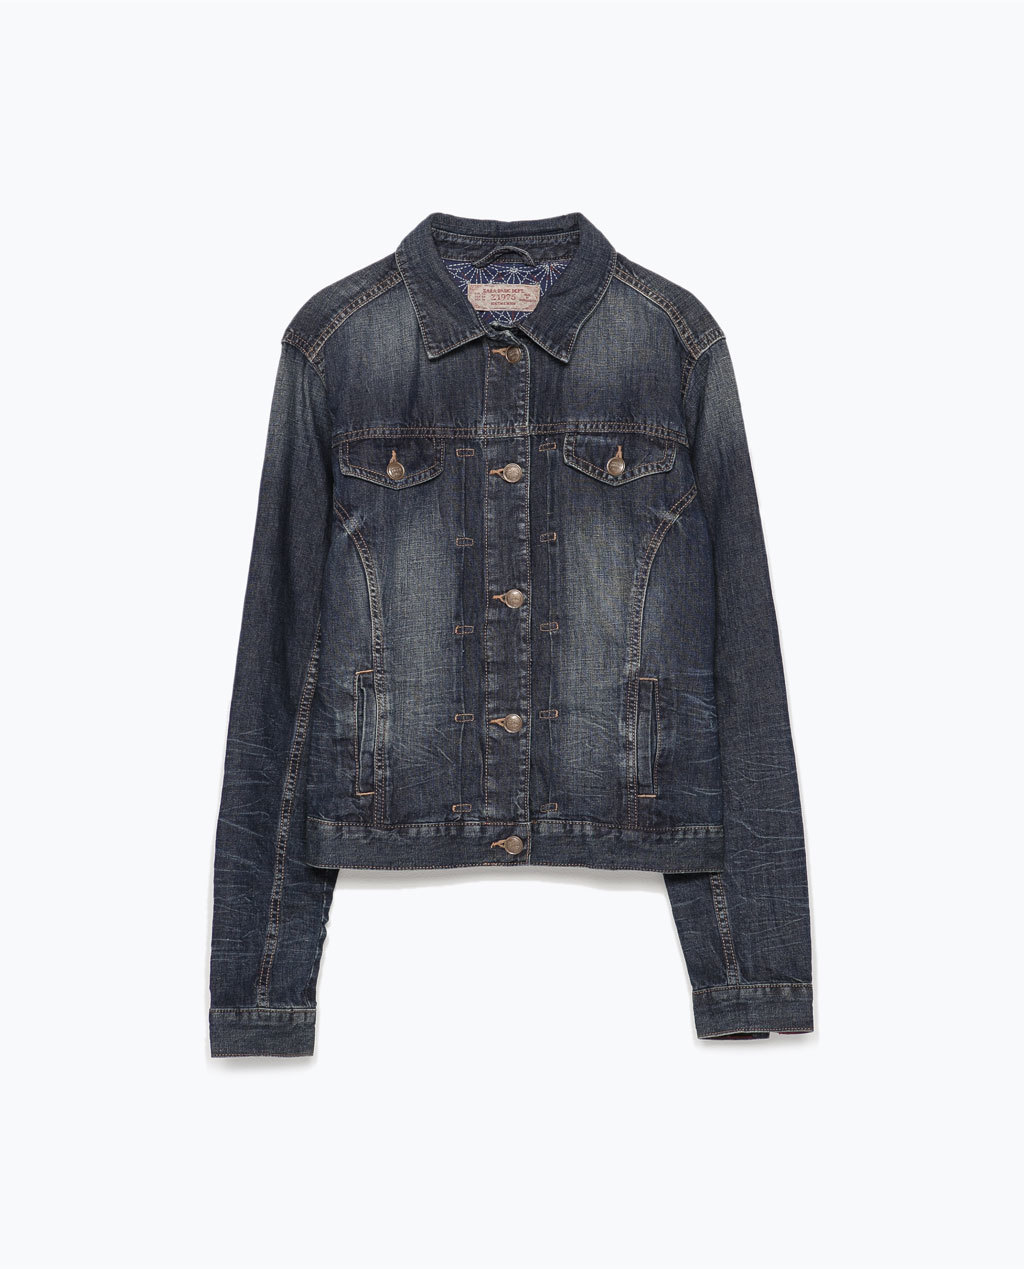 Denim Jacket - pattern: plain; style: denim; predominant colour: navy; occasions: casual, creative work; length: standard; fit: straight cut (boxy); fibres: cotton - mix; collar: shirt collar/peter pan/zip with opening; sleeve length: long sleeve; sleeve style: standard; texture group: denim; collar break: high/illusion of break when open; pattern type: fabric; season: s/s 2015; wardrobe: basic